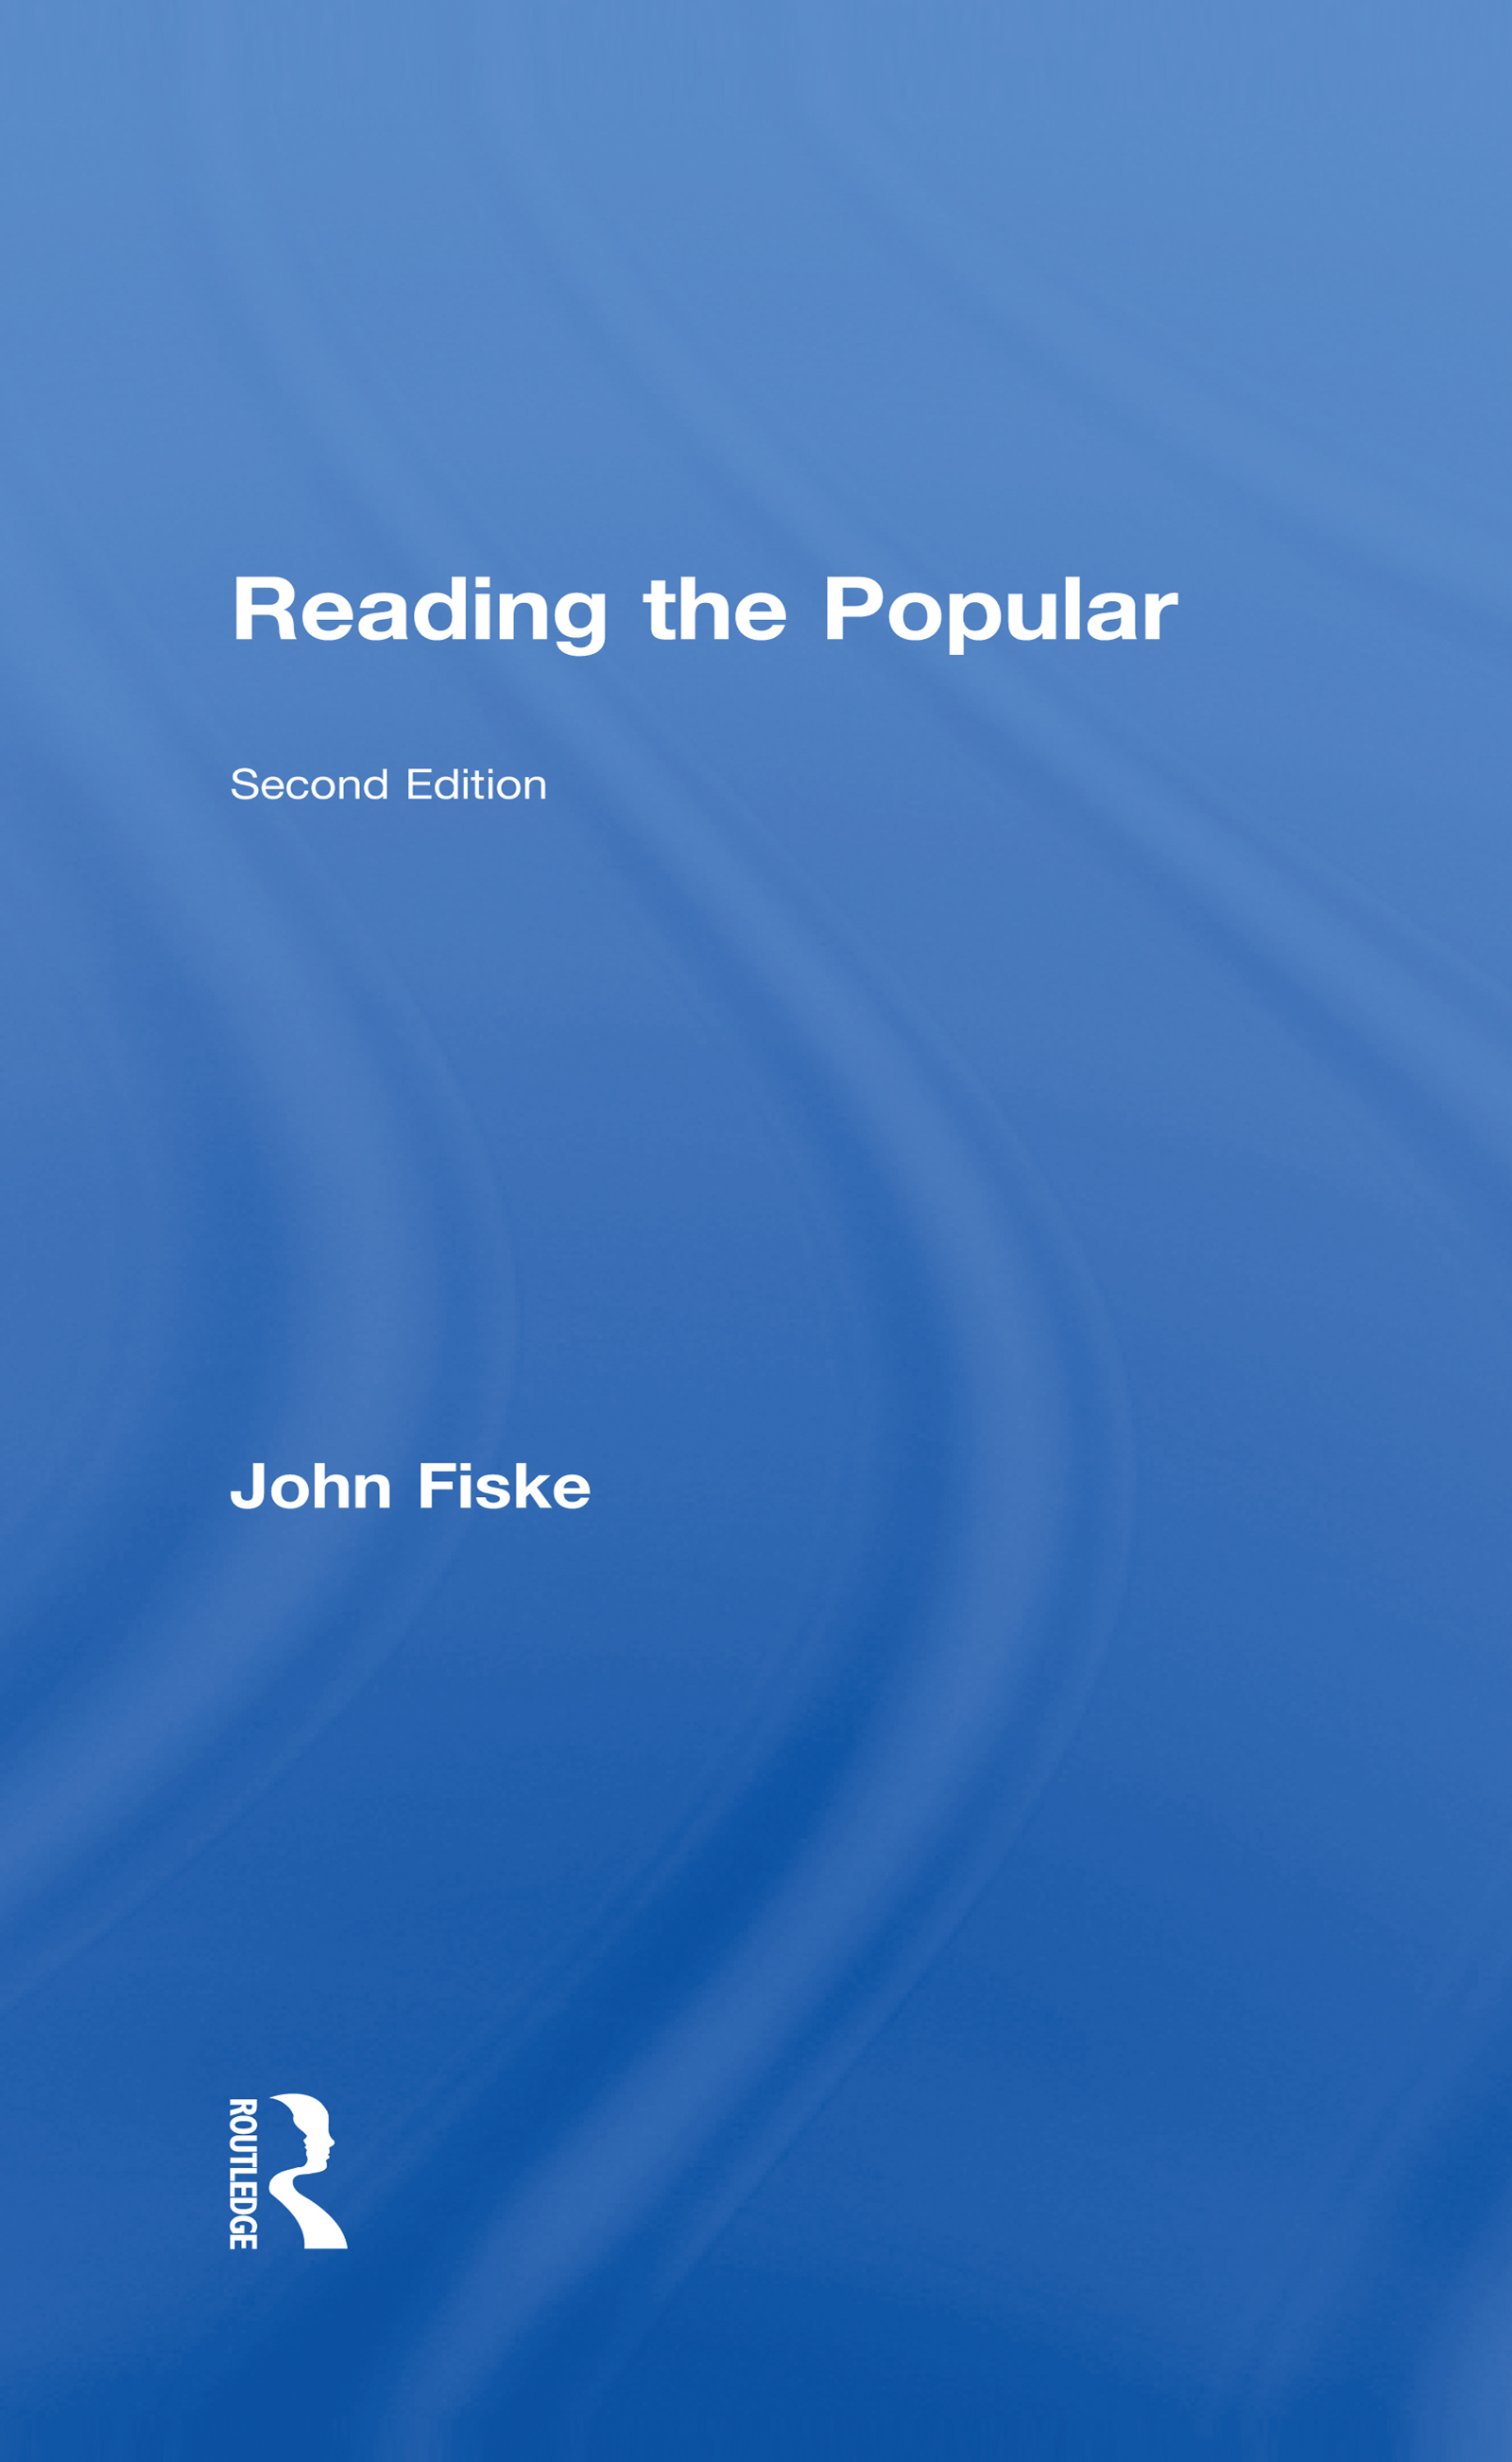 Reading the Popular, Second Edition book cover